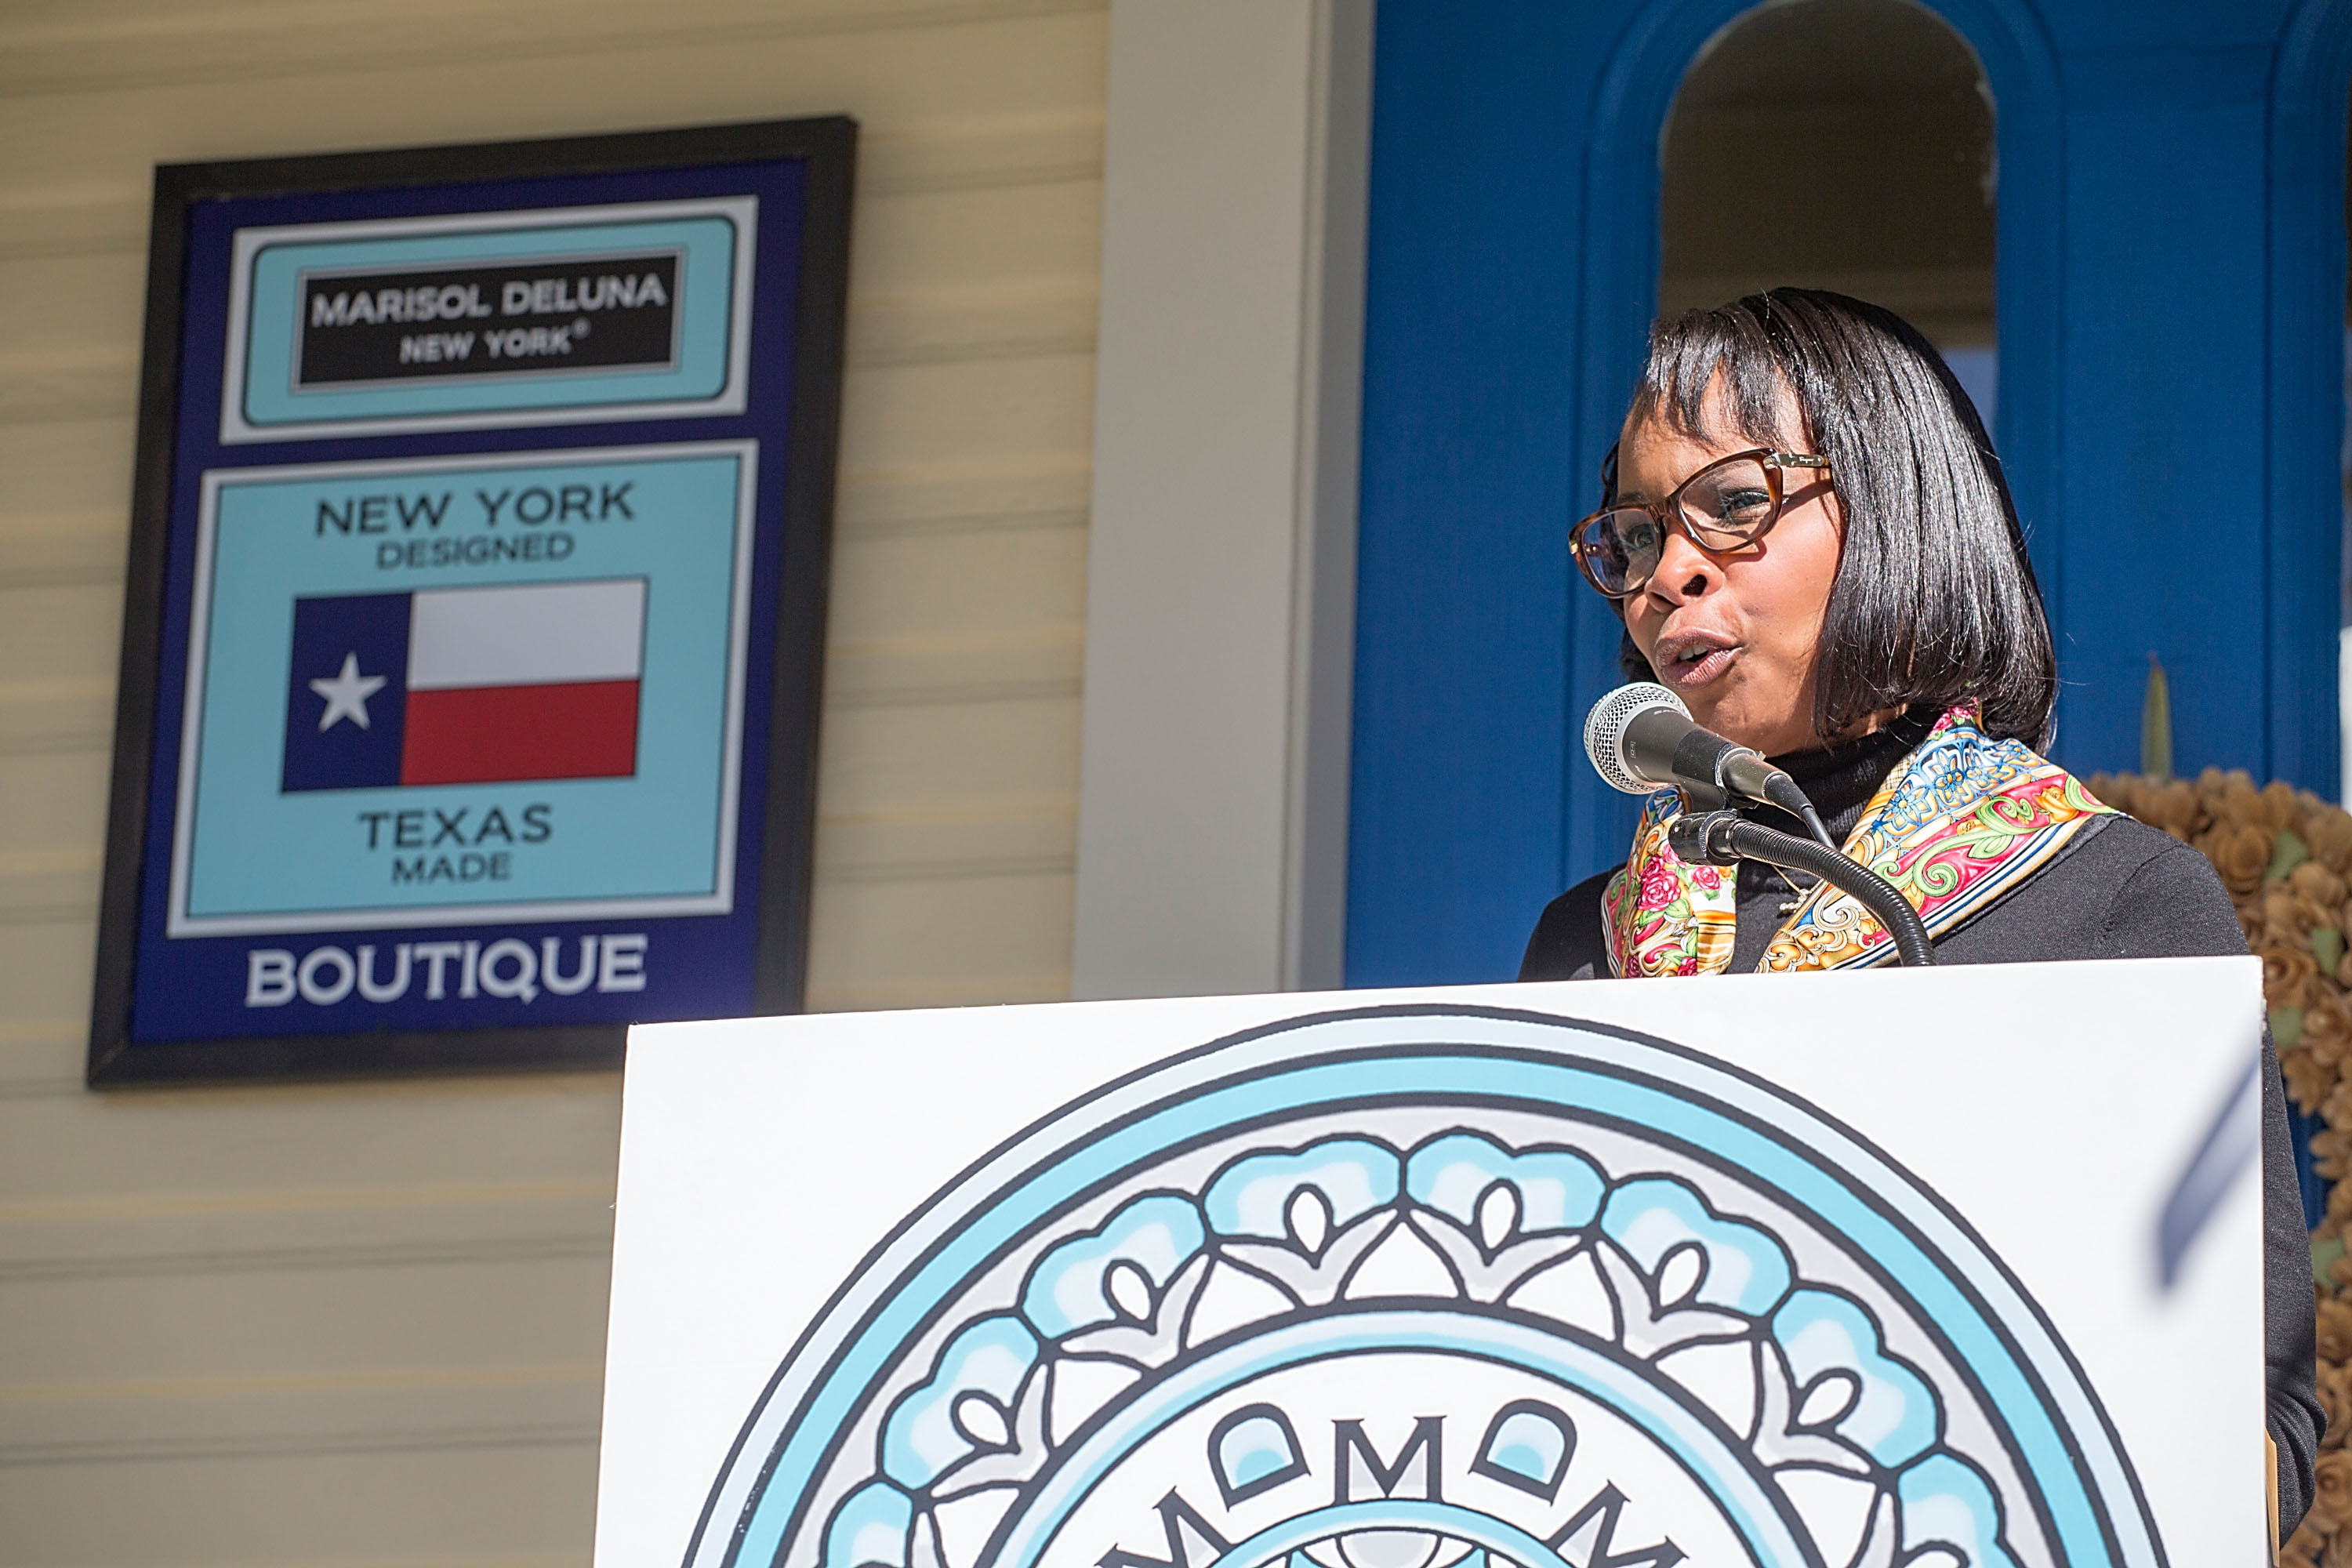 San Antonio Mayor Ivy R. Taylor speaks during the grand opening of Marisol Deluna New York Design Studio and Educational Foundation at La Villita Historic Art Village on November 18, 2015 in San Antonio, Texas.